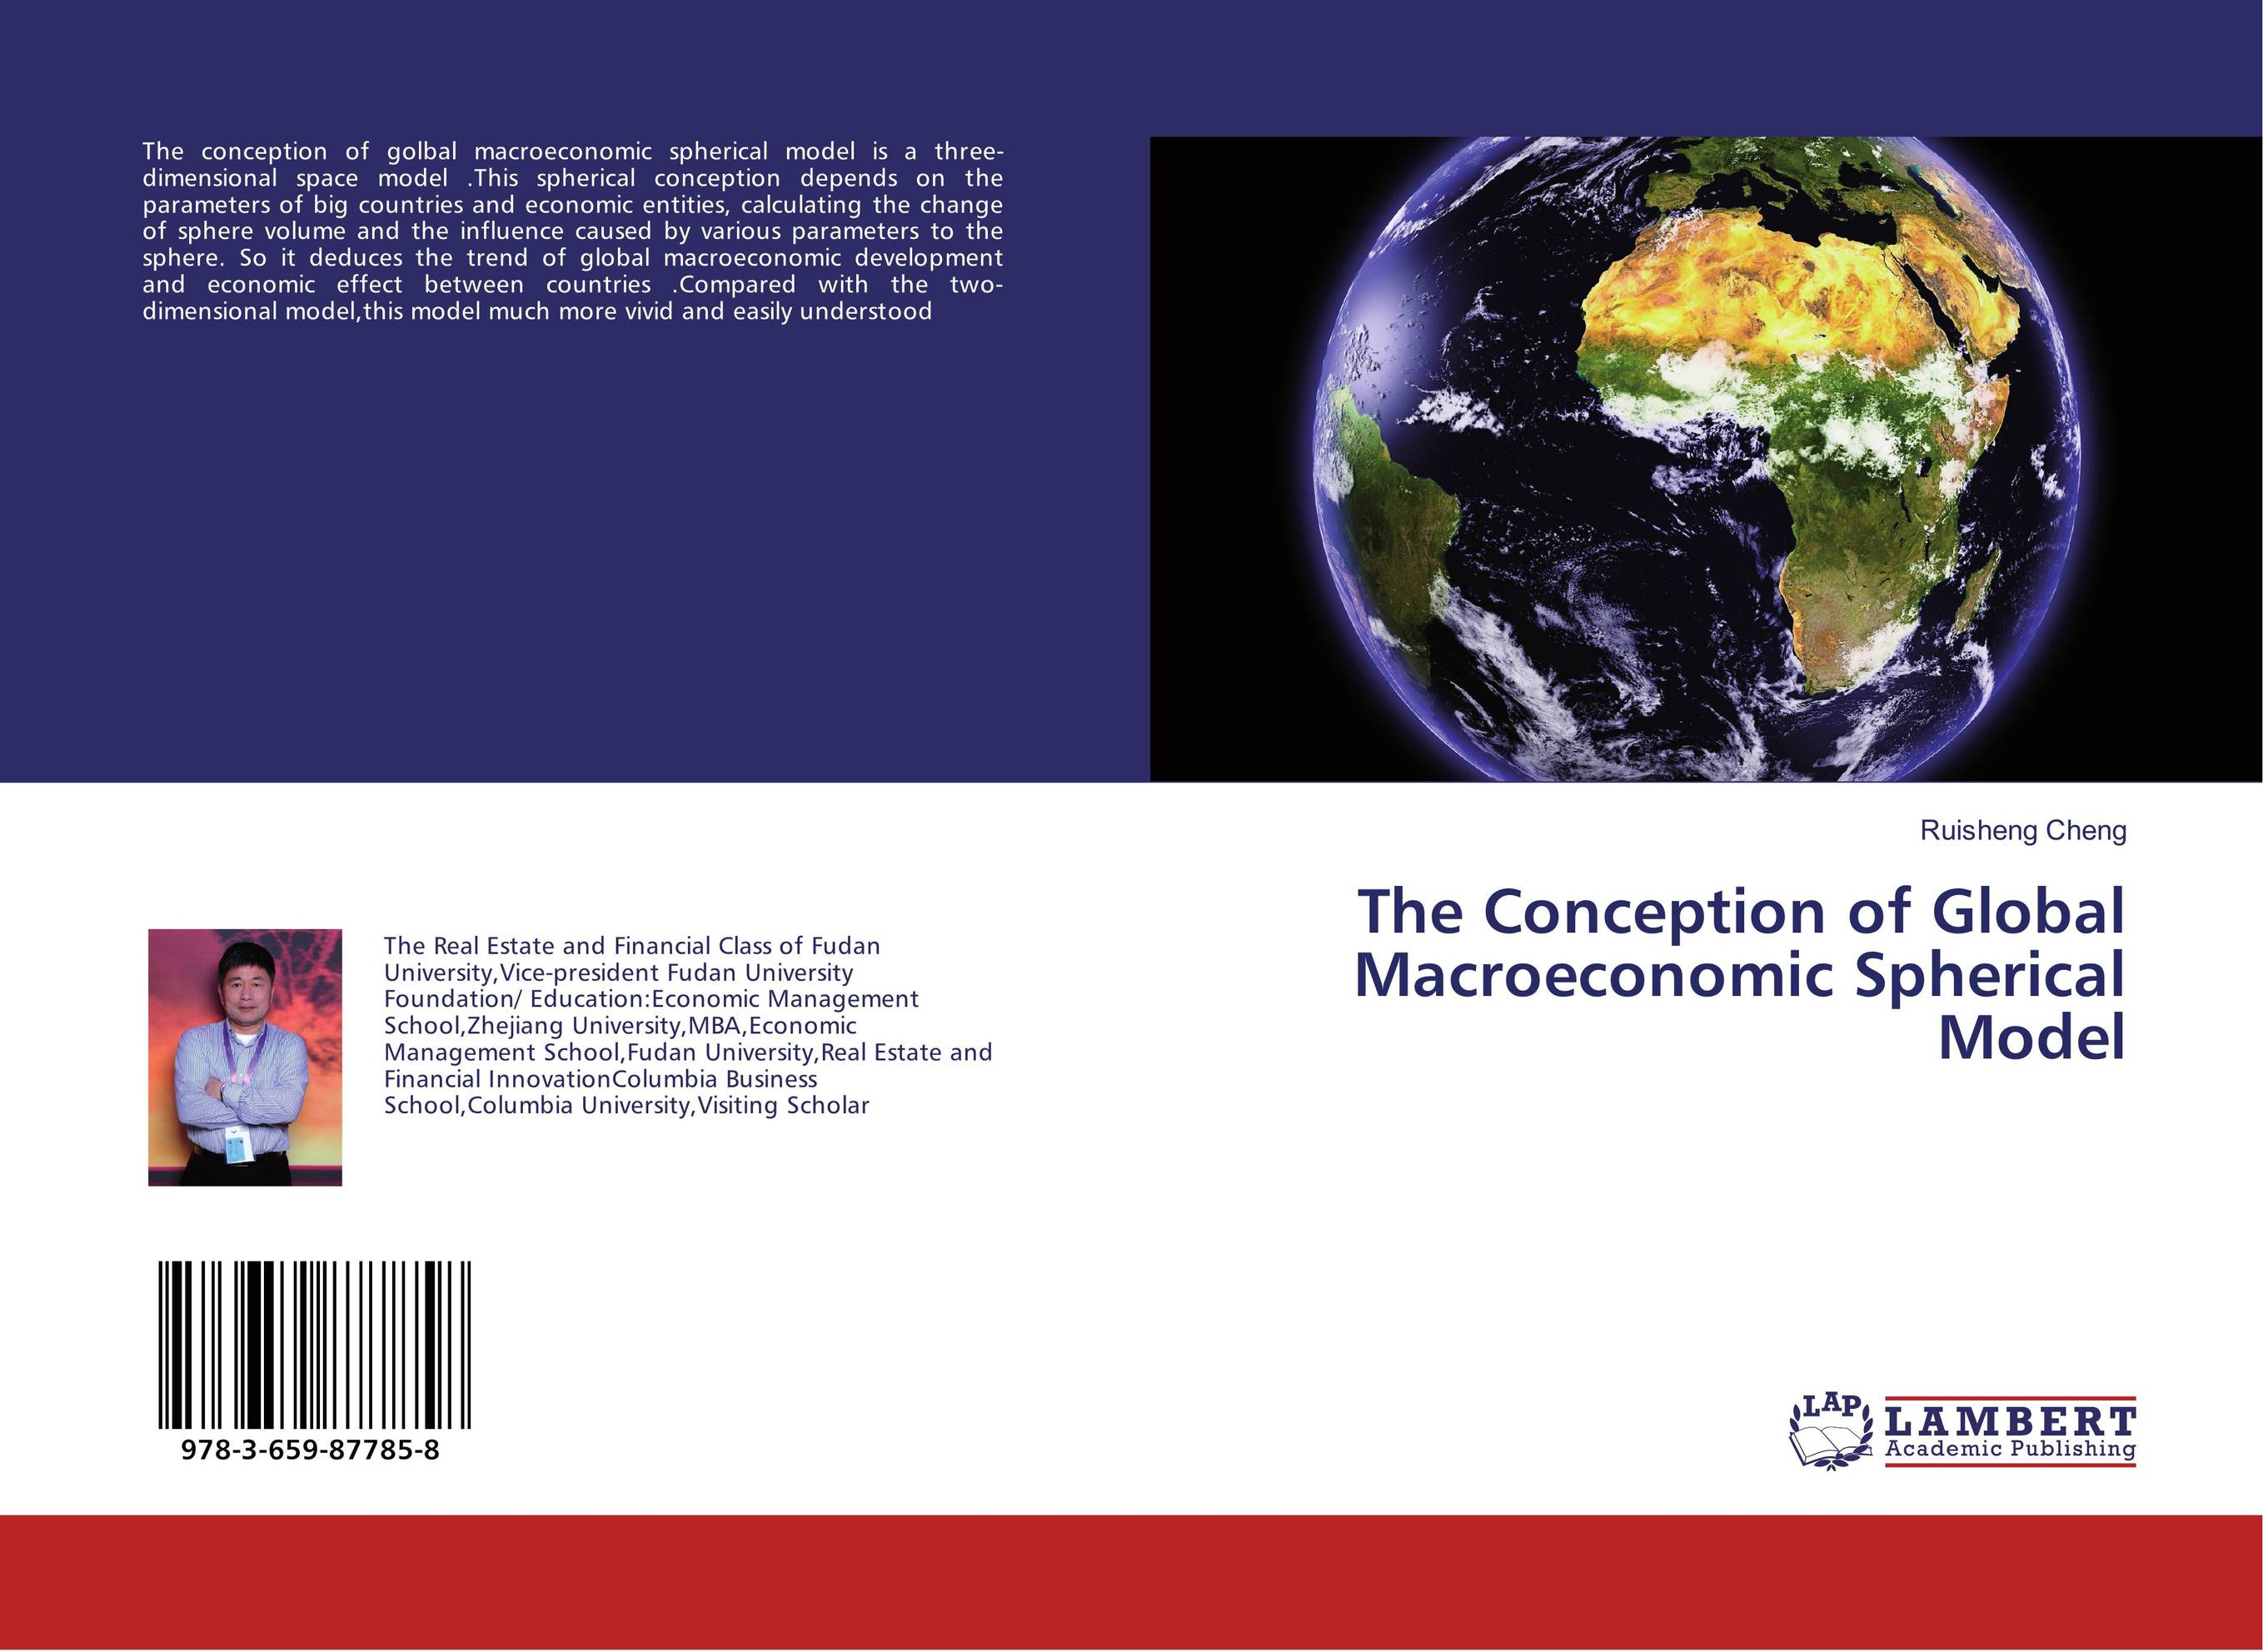 The Conception of Global Macroeconomic Spherical Model